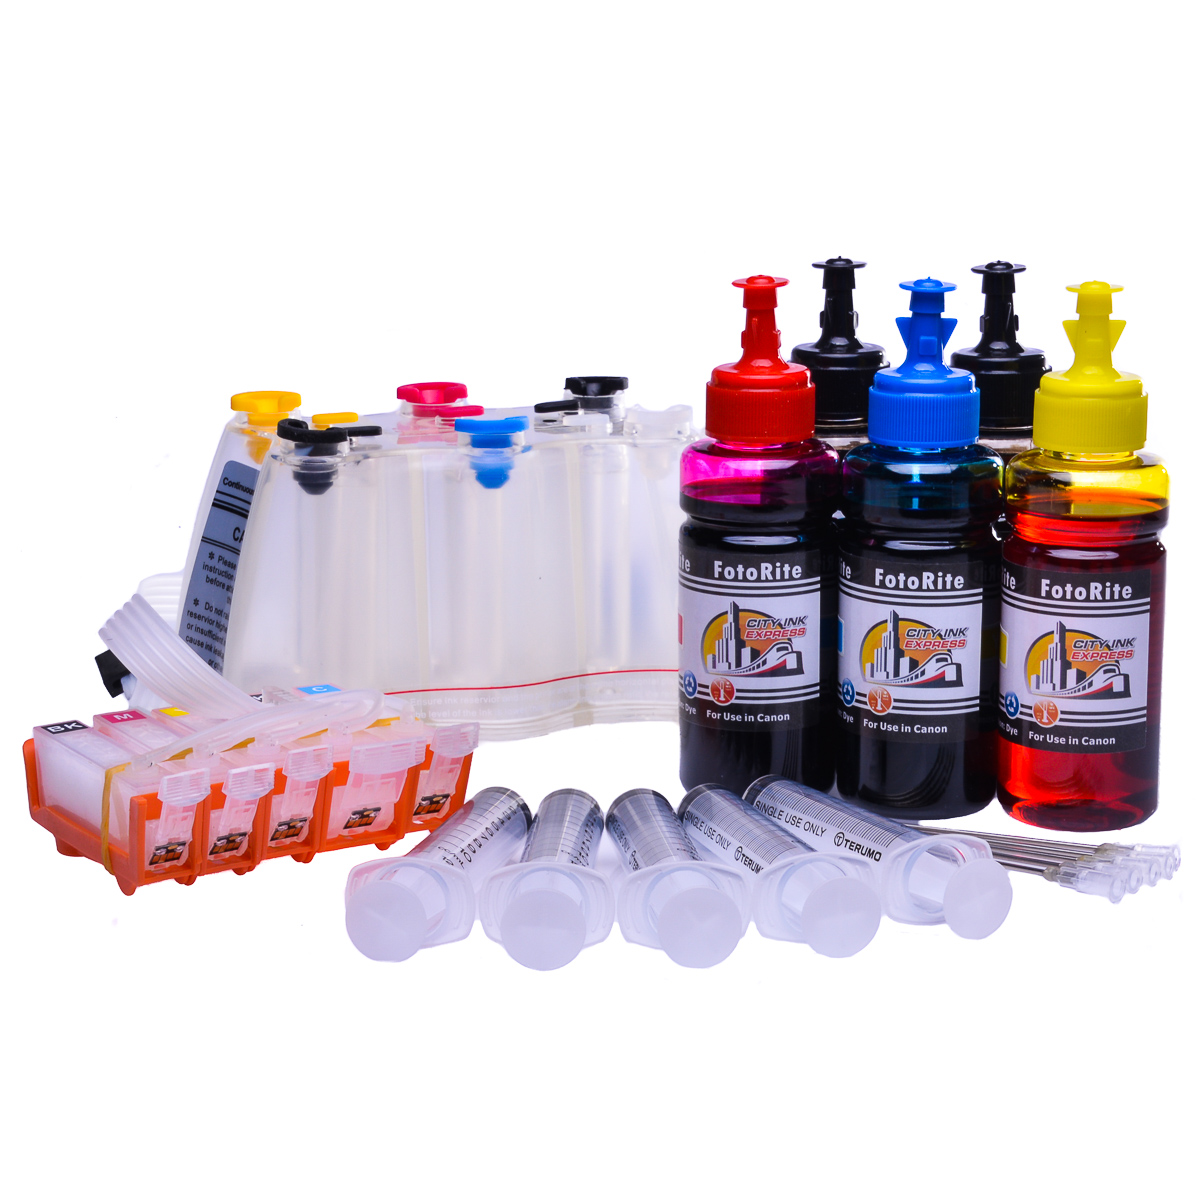 Ciss for Canon IX6550, dye and pigment ink